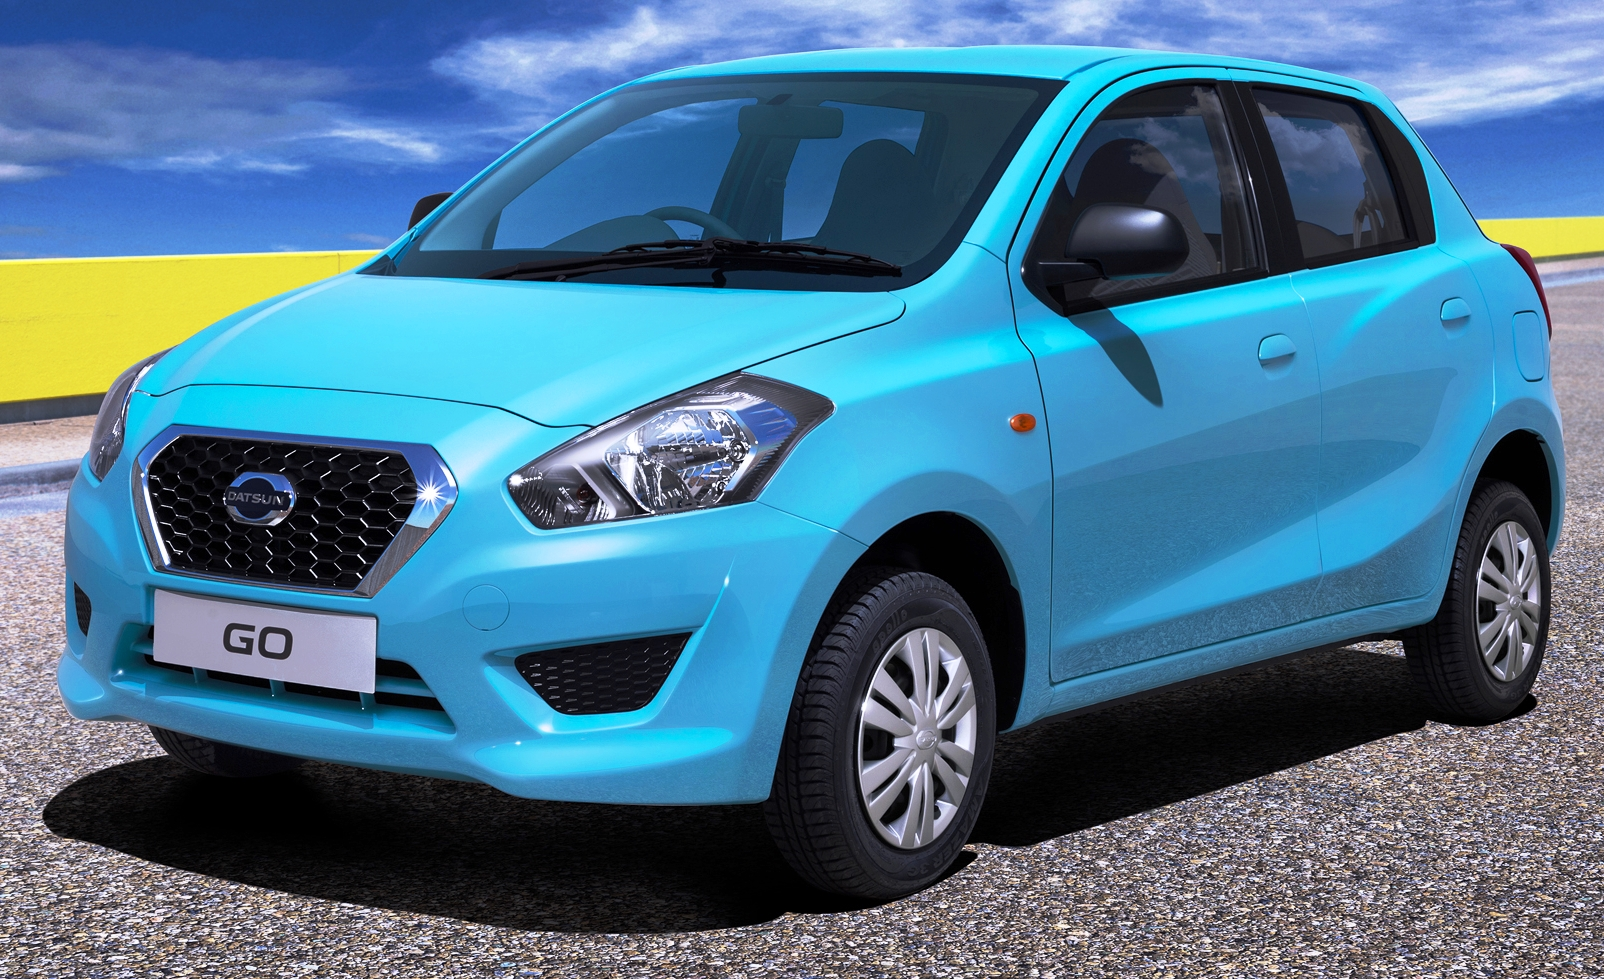 2014 Datsun GO Review - Top Speed